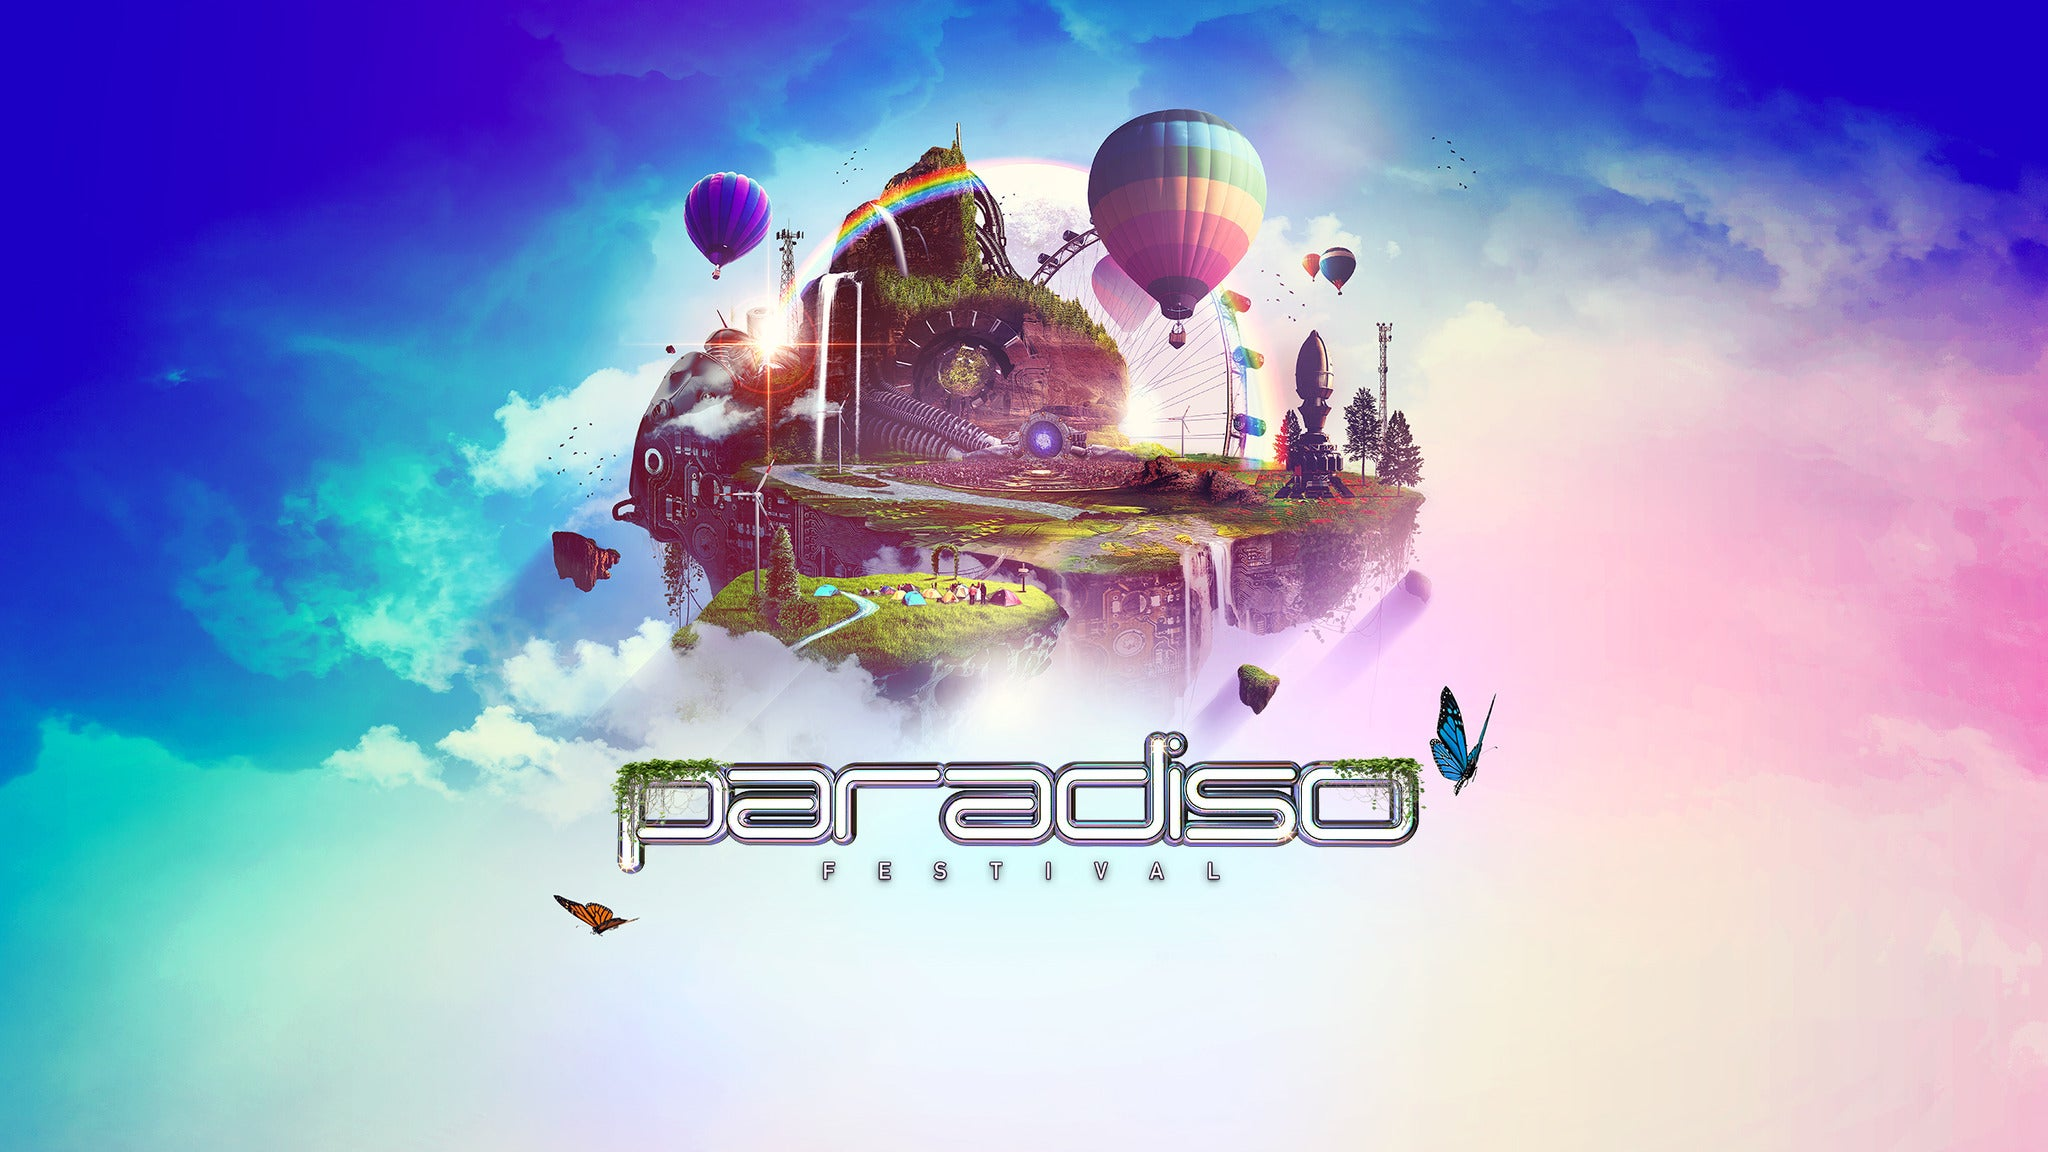 Paradiso Festival - Oasis Camping at Gorge Amphitheatre